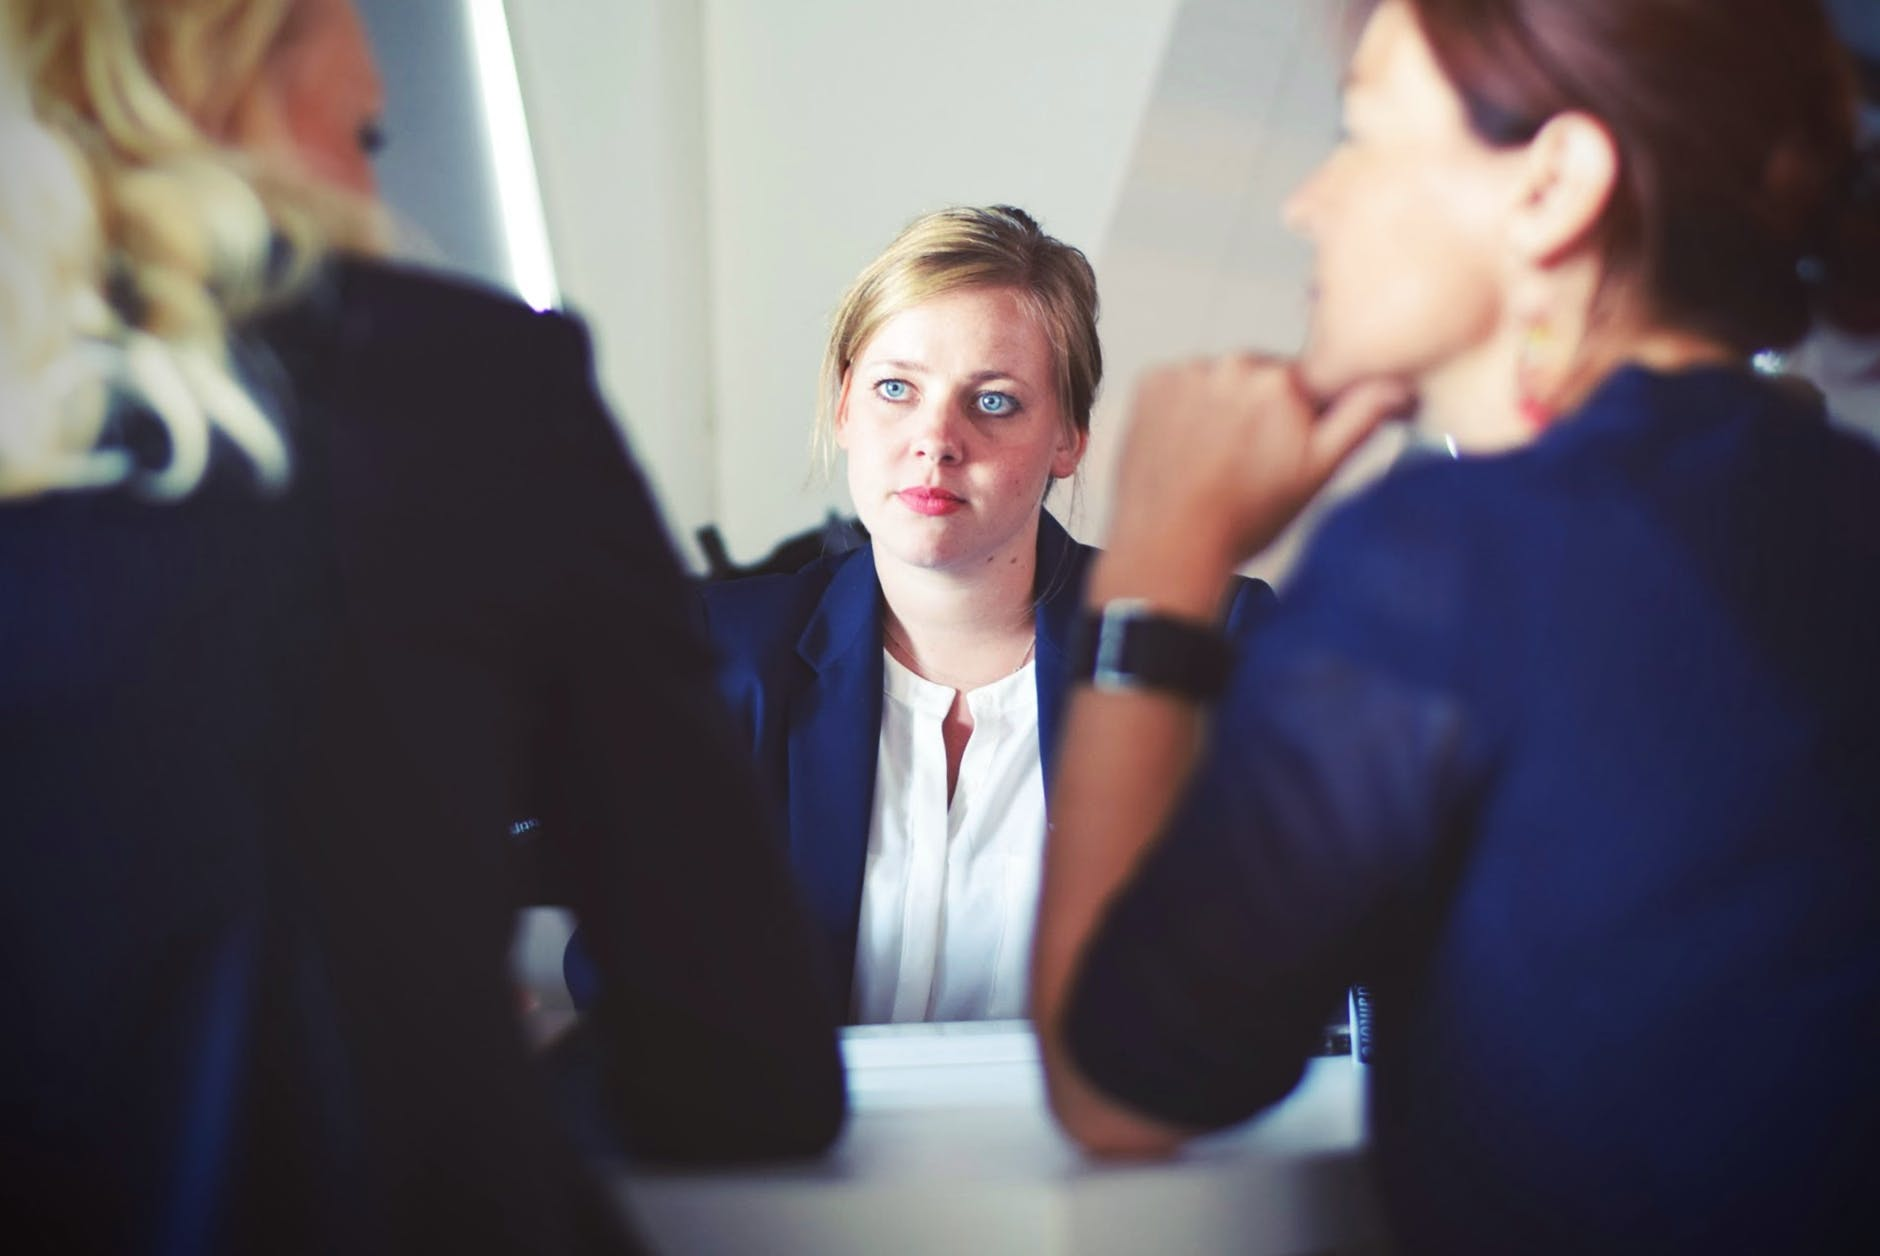 Family Law Mediation is preferred over a trial